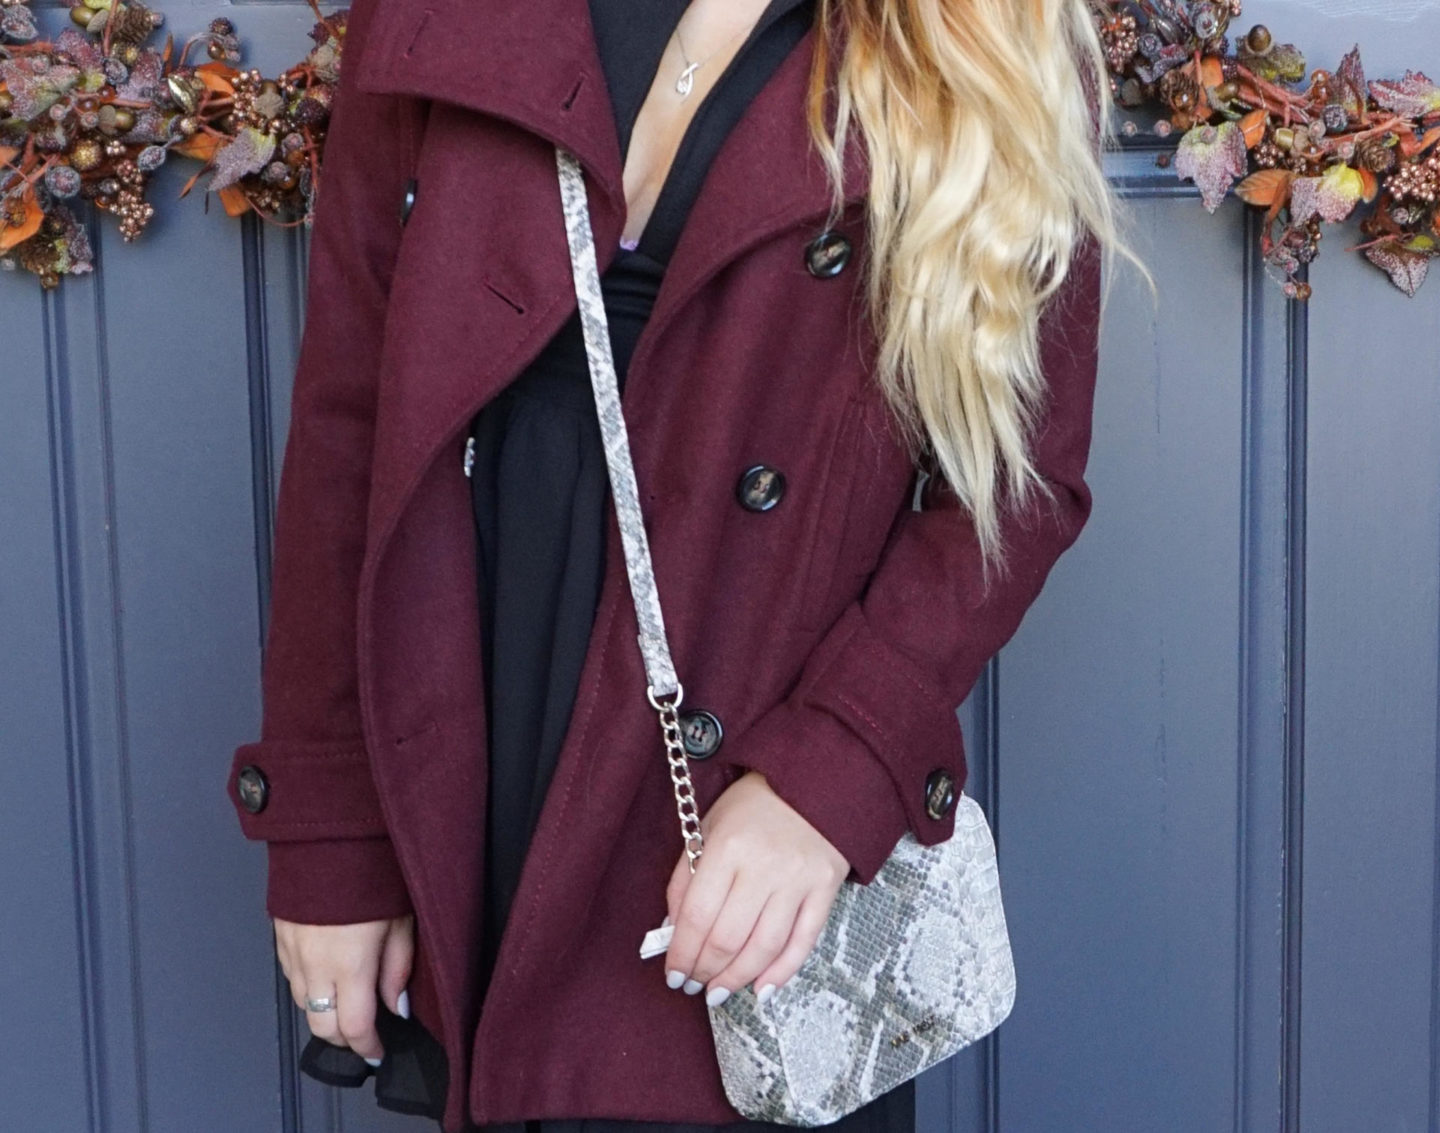 nordstrom-fall-clearance-sale-holiday-cyber-shopping-02